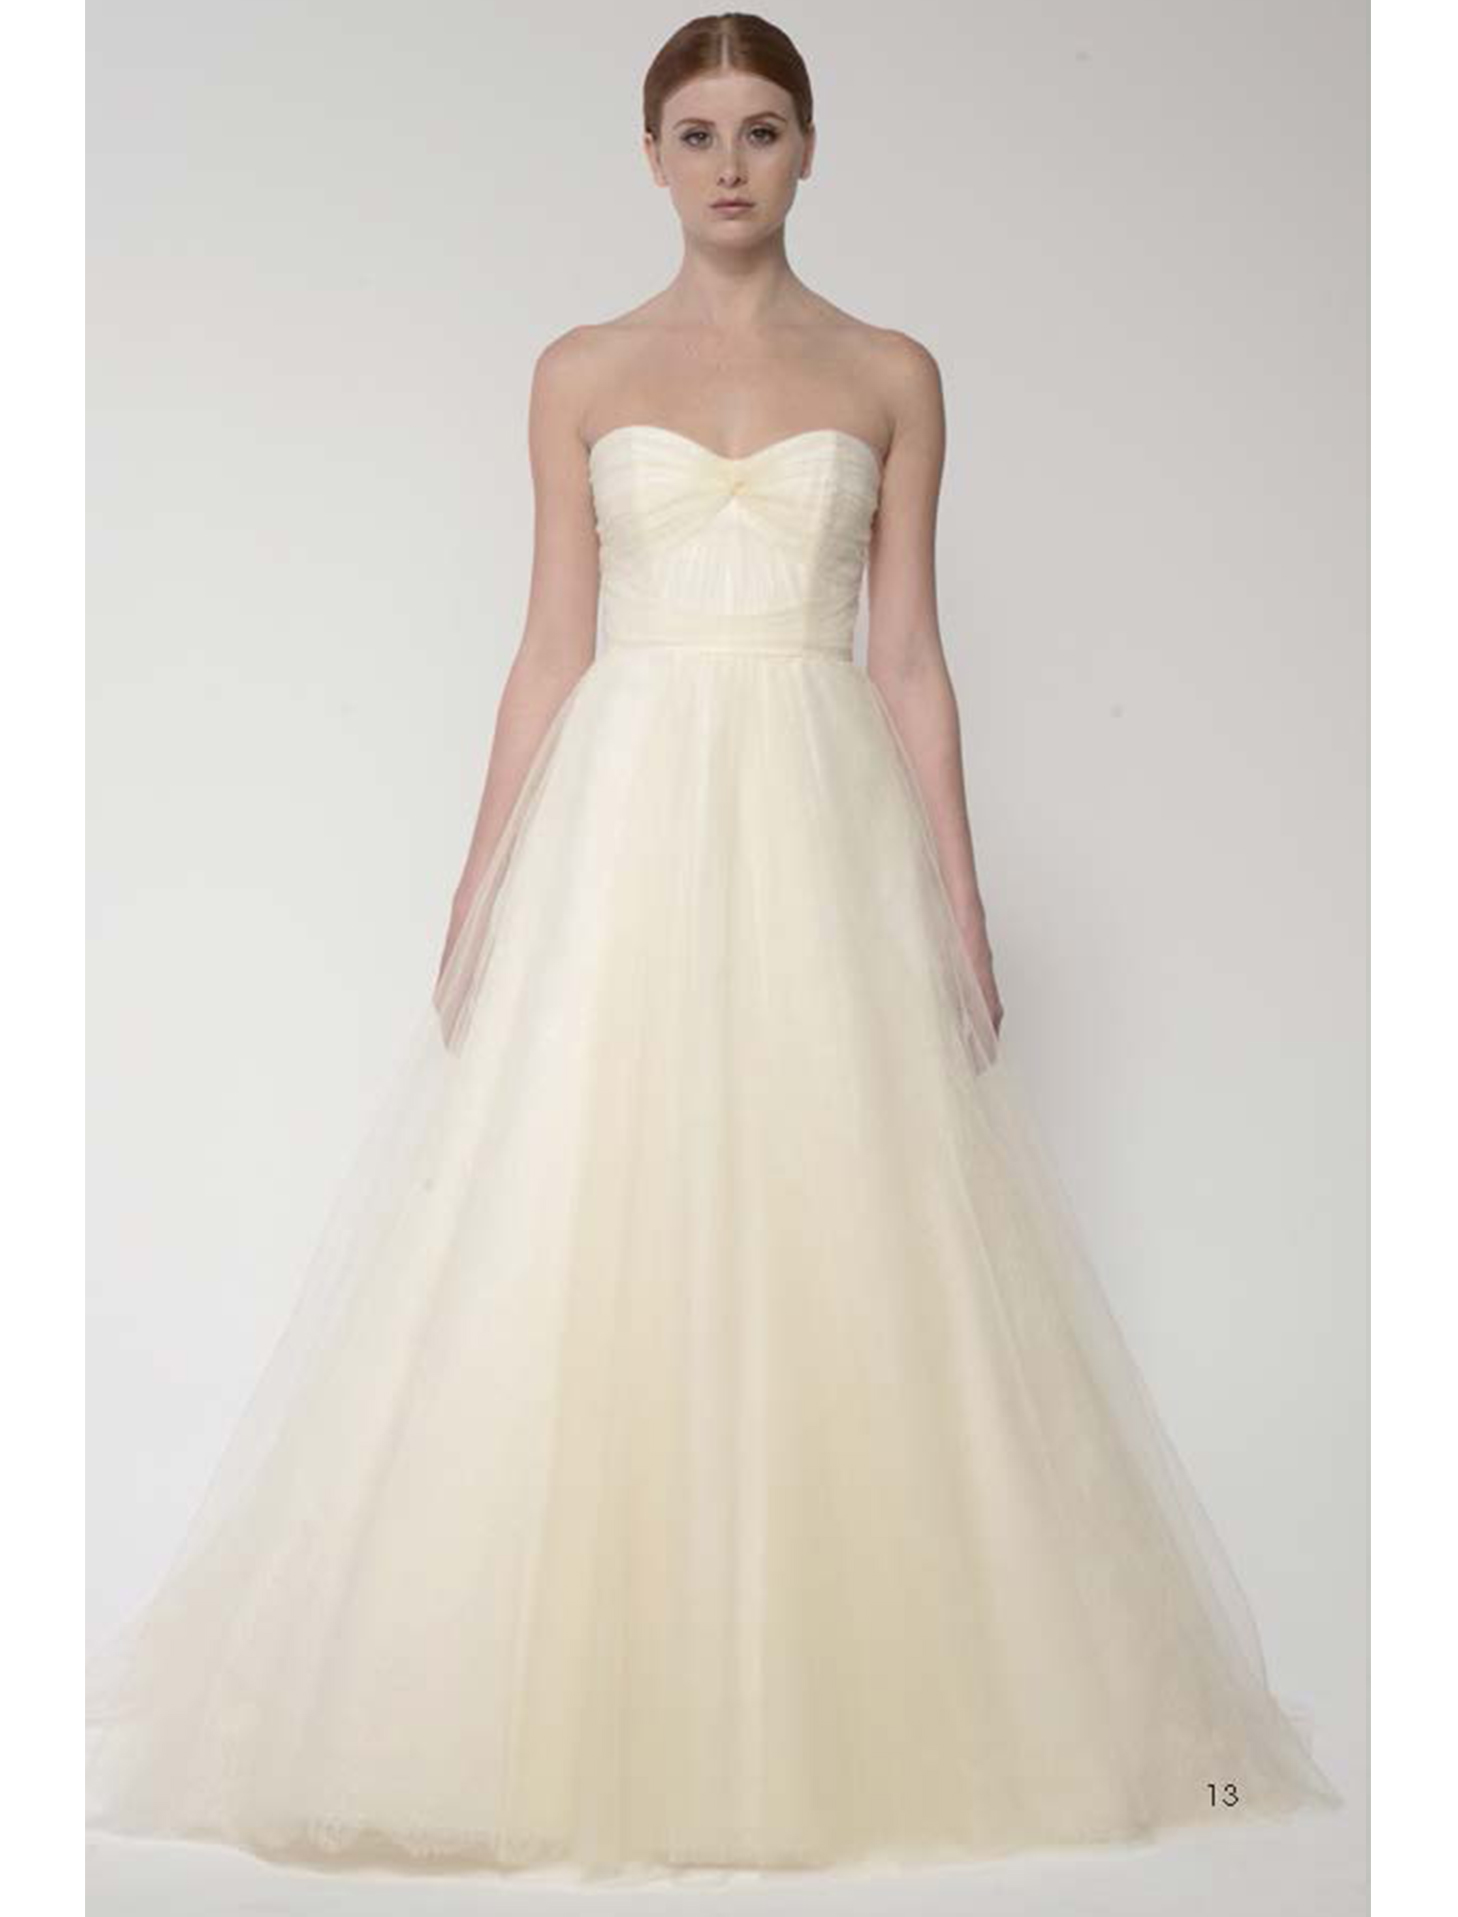 bliss by lhuillier kleinfeld bridal